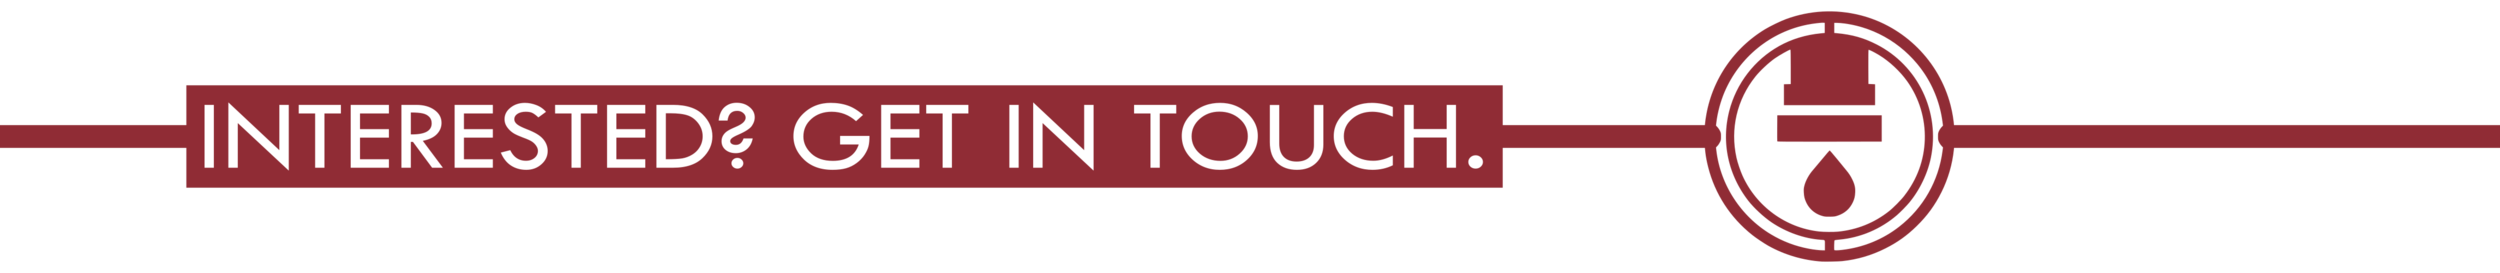 Get in Touch - Maroon.png